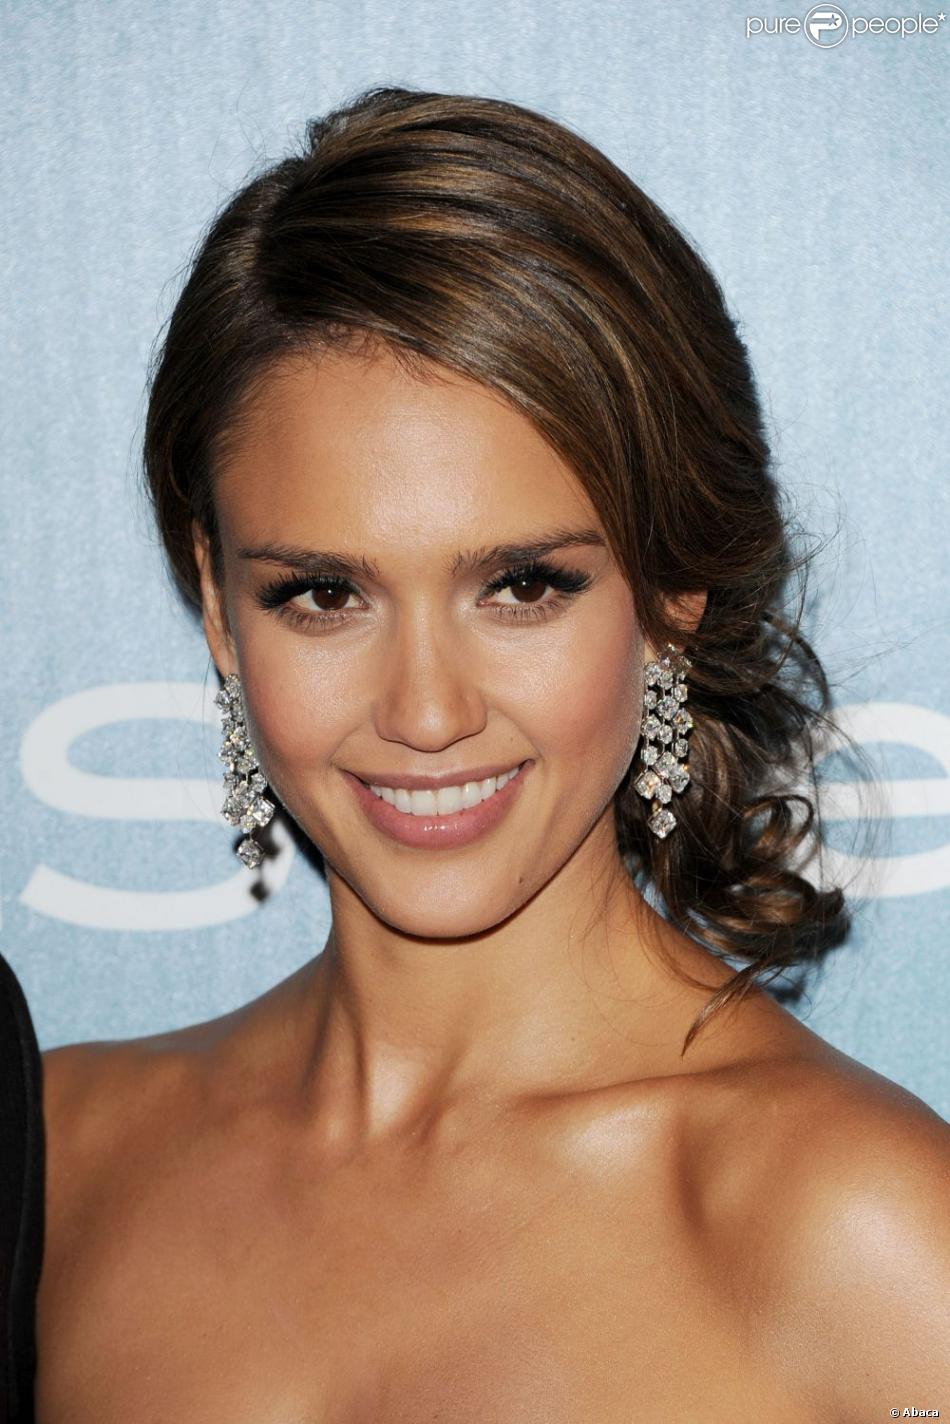 jessica alba porte un chignon flou et bas pour une coiffure glamour sans effet fig un must. Black Bedroom Furniture Sets. Home Design Ideas